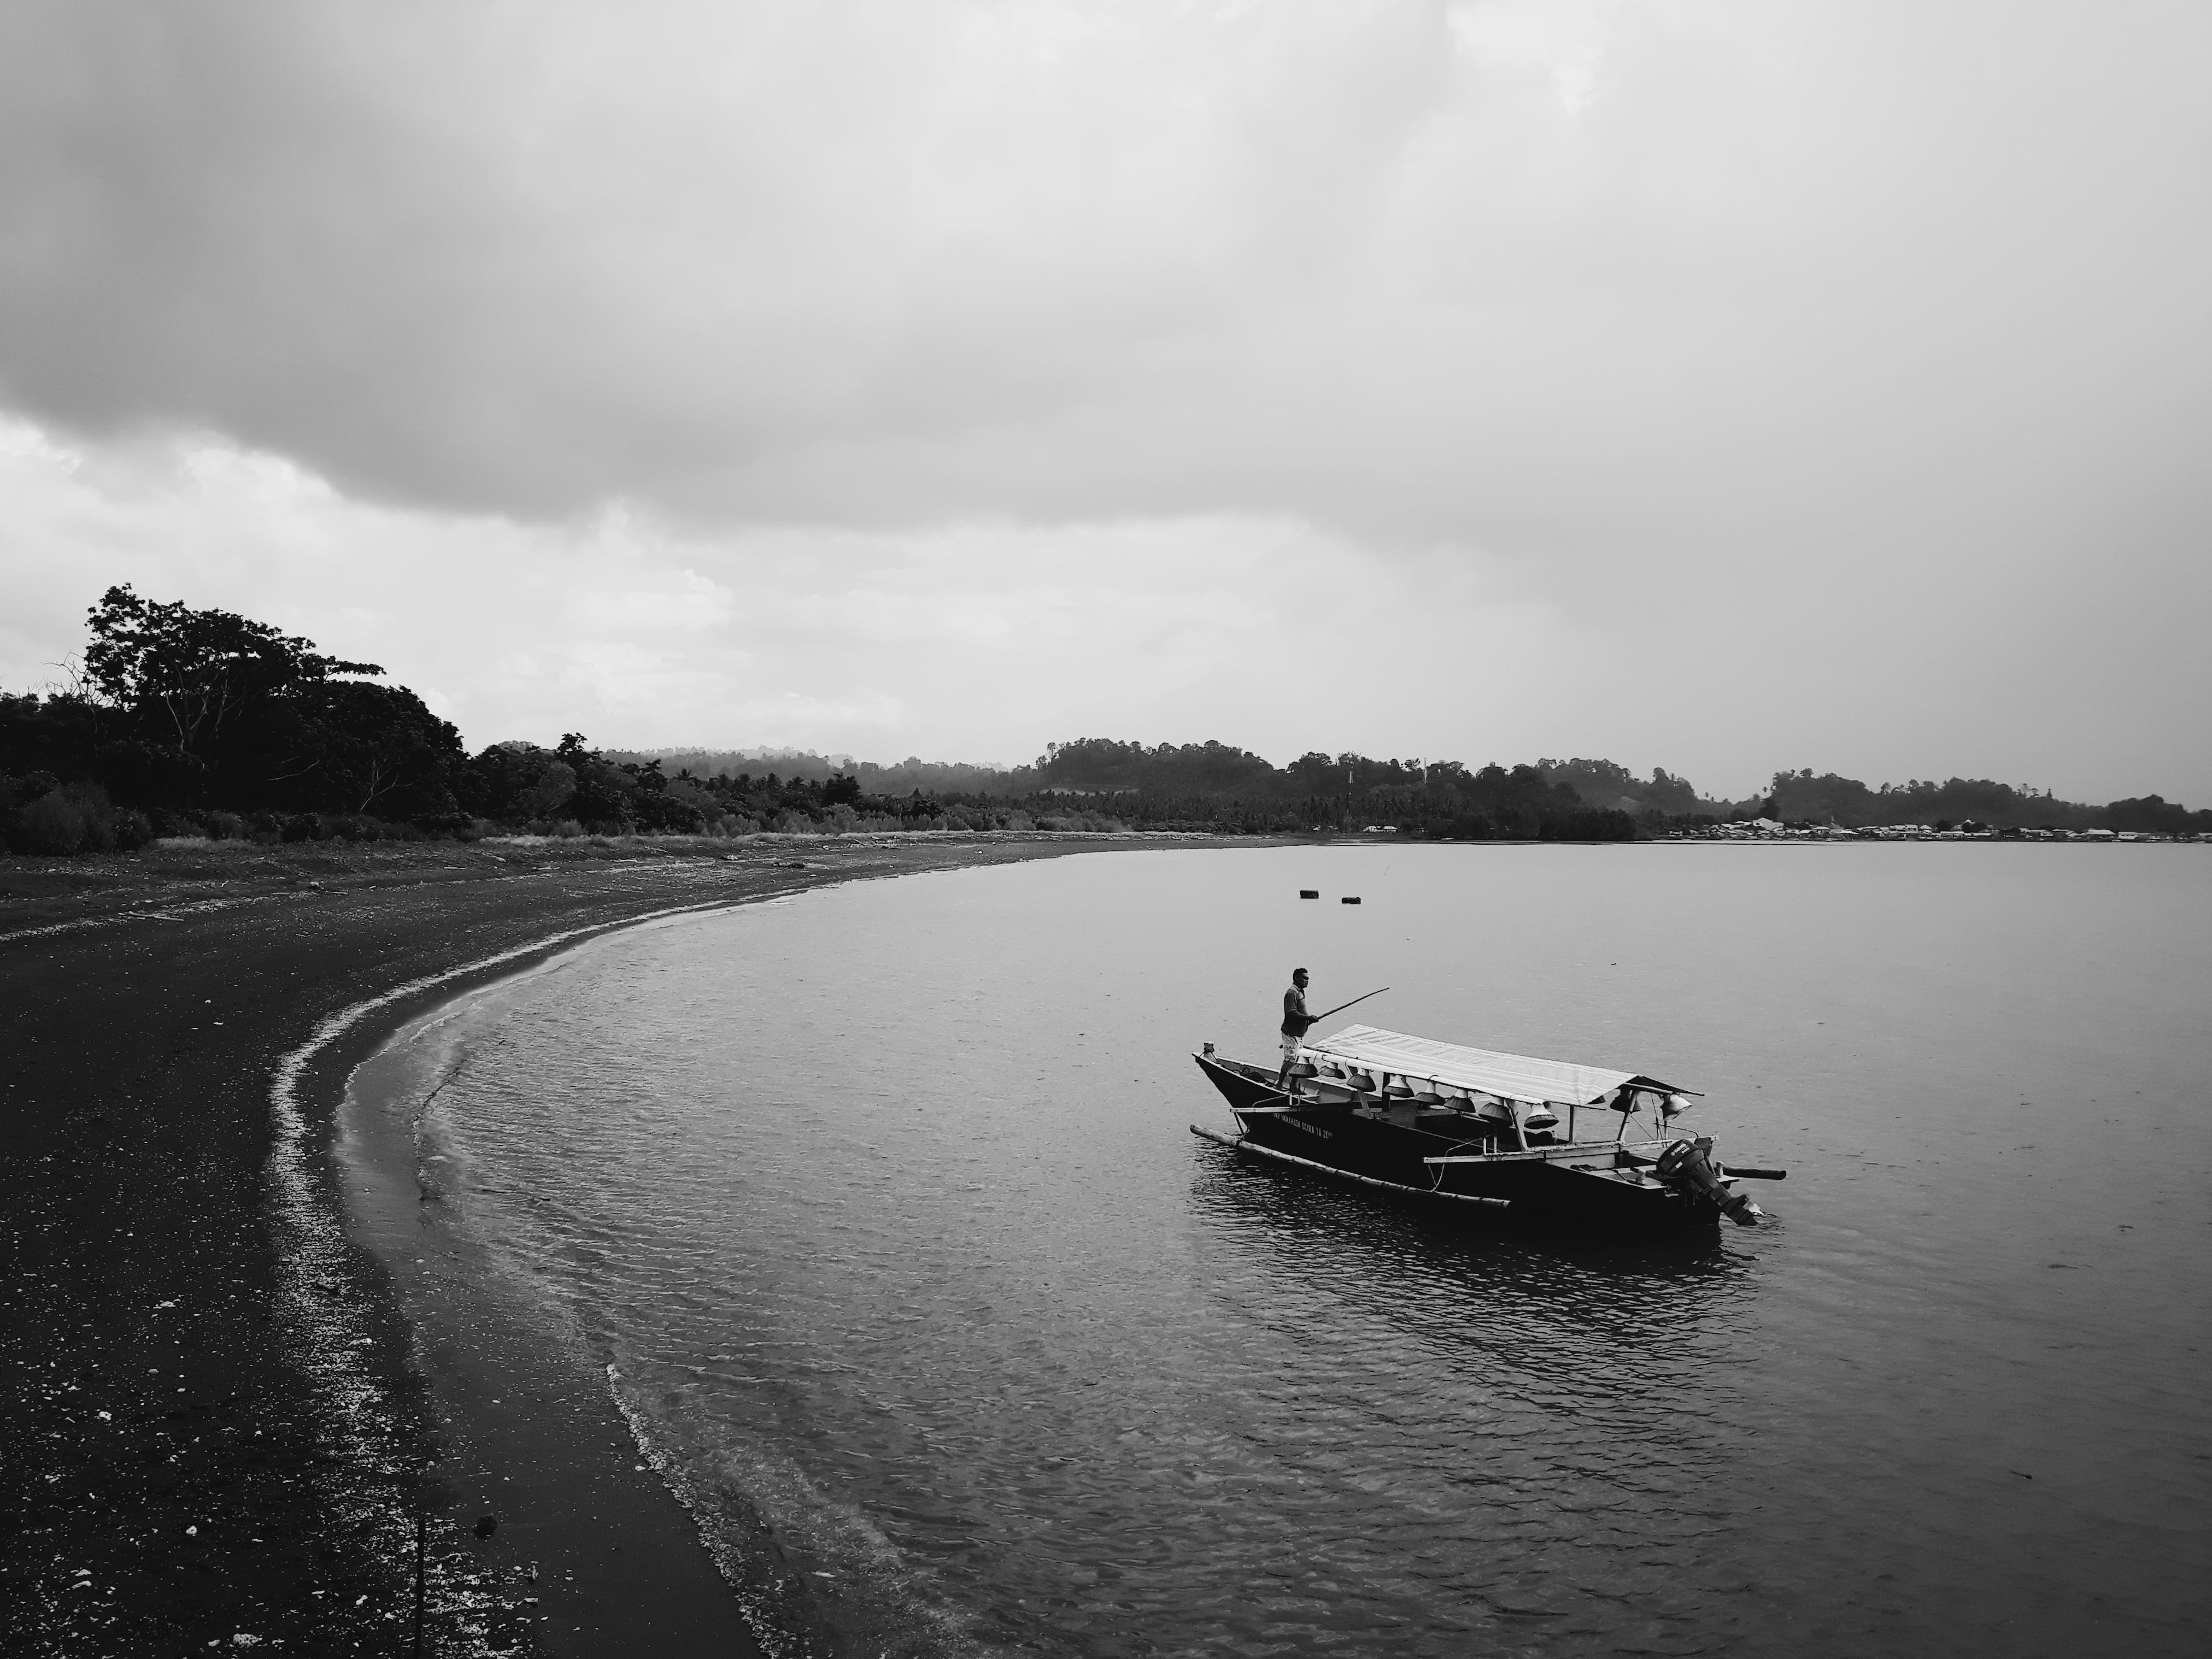 Grayscale Photo of Row Boat